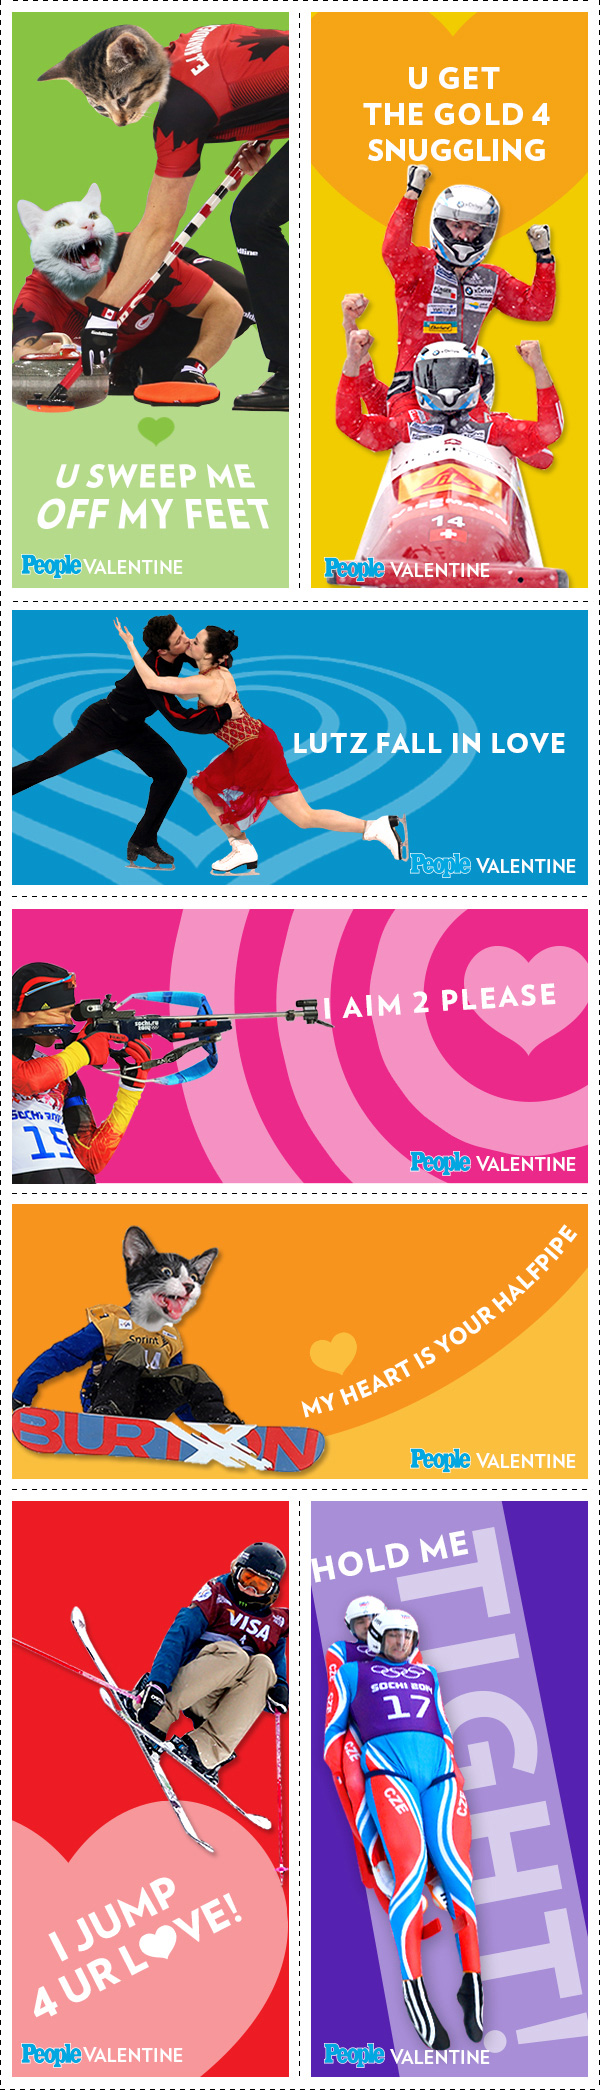 Go for the Gold with These Winter Olympics-Themed Valentines| Winter Olympics 2014, Valentine's Day, Olympics